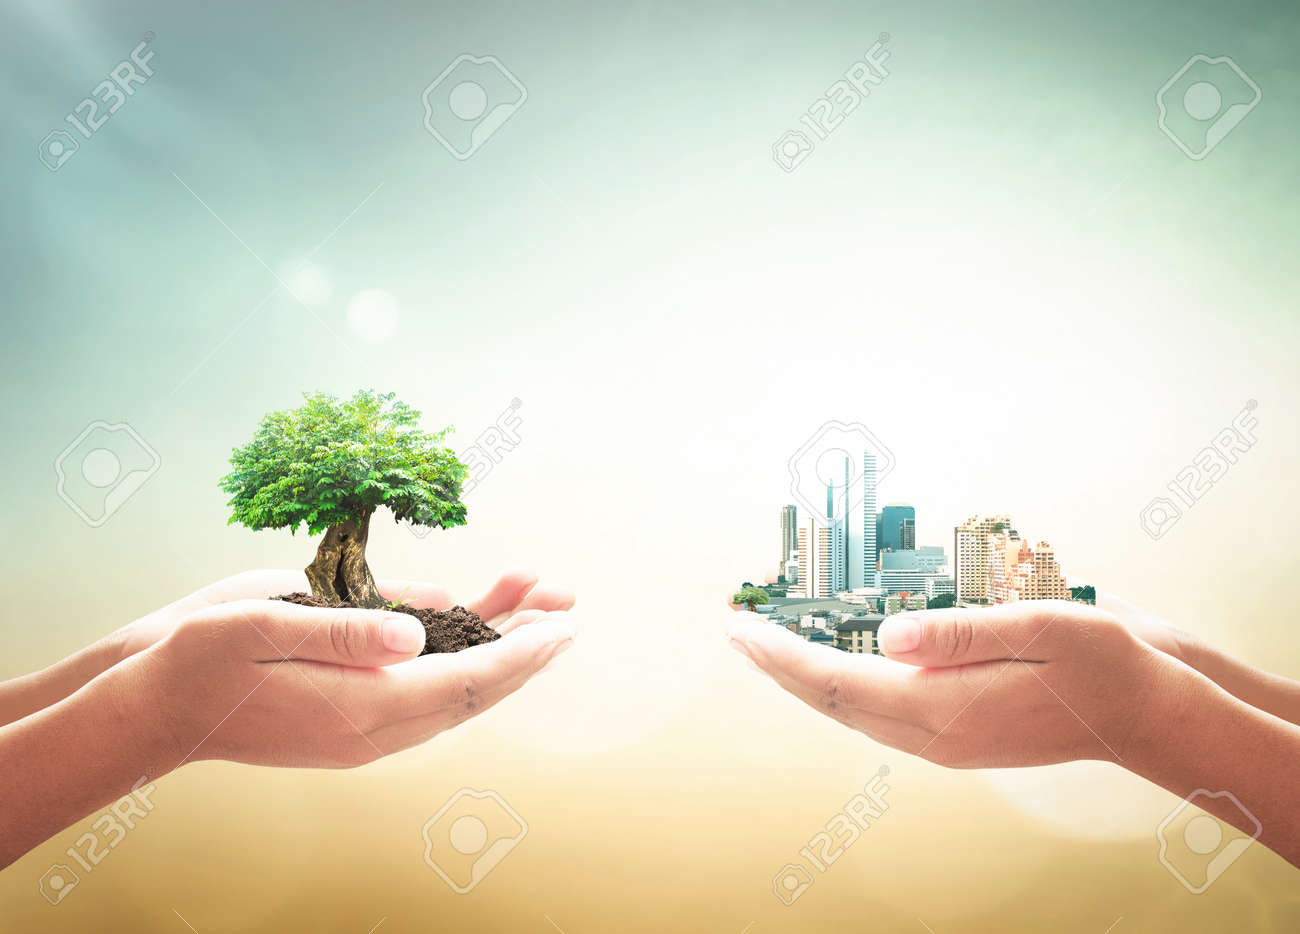 Sustainable development goal (SDGs) concept: Two human hands holding big tree and city over blurred green nature background - 156162911